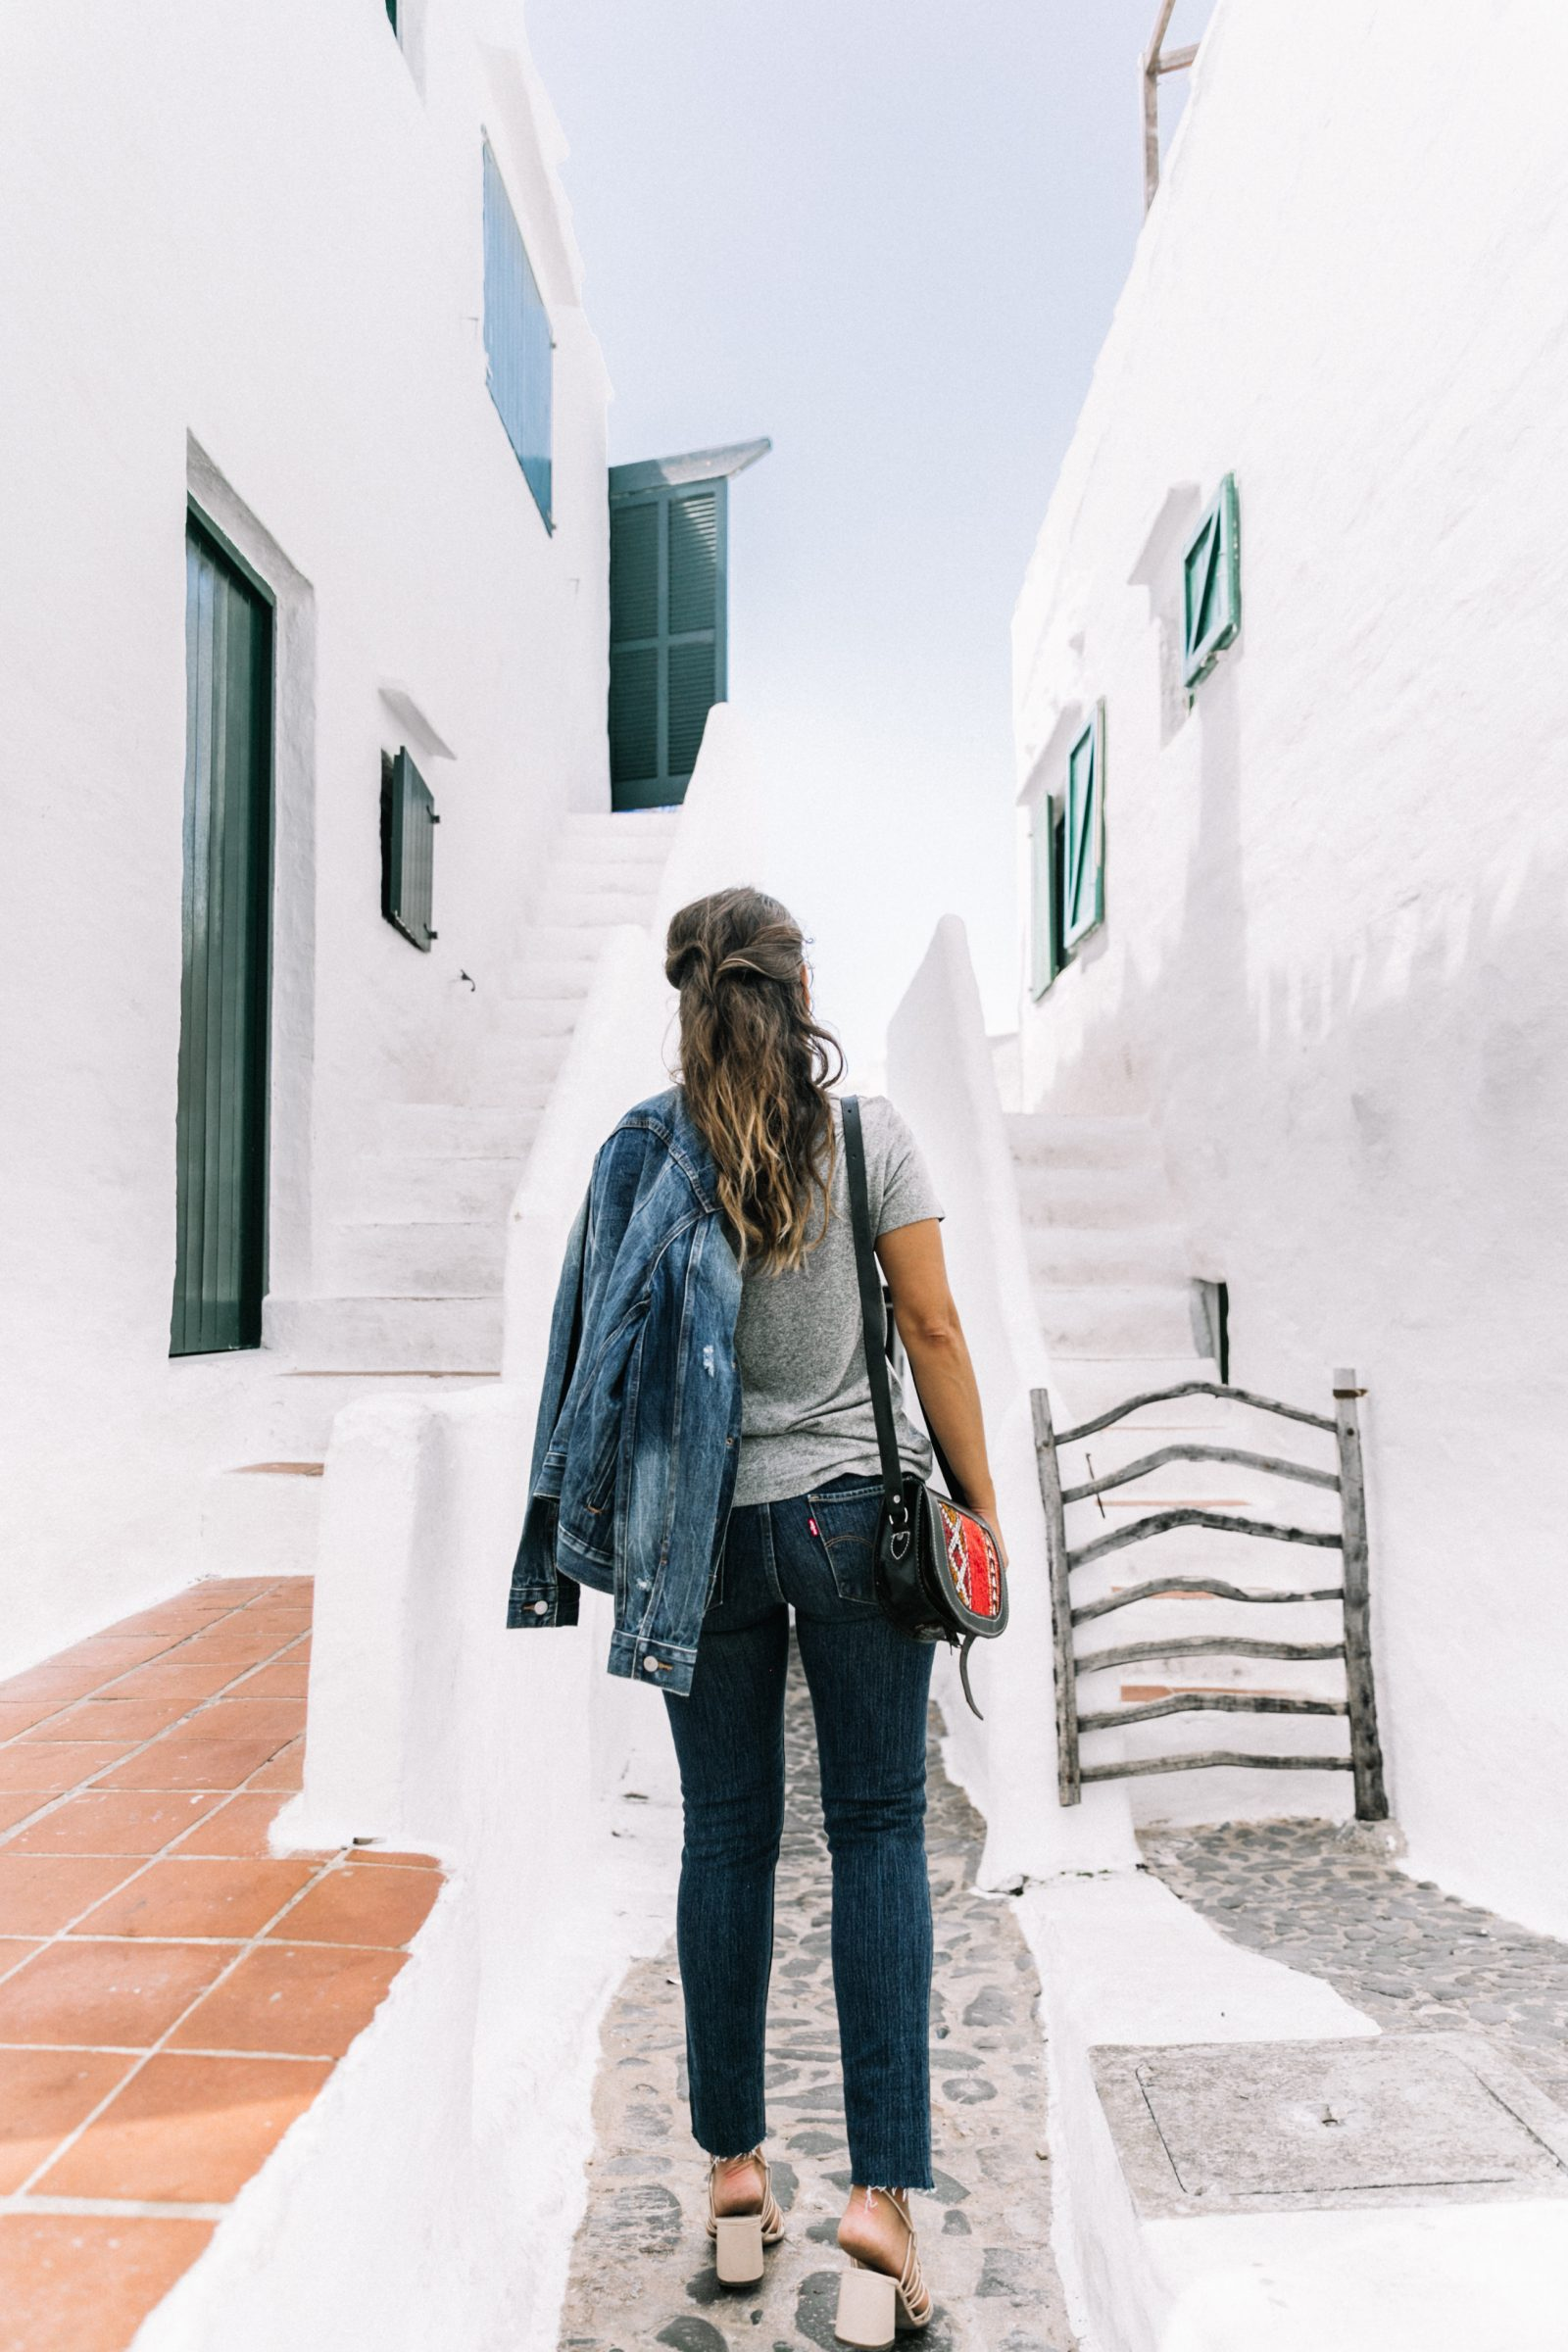 Live_in_Levis-Denim-Who_What_Wear-Levis-Denim-Double_Denim-Menorca-Street_Style-Collage_Vintage-57